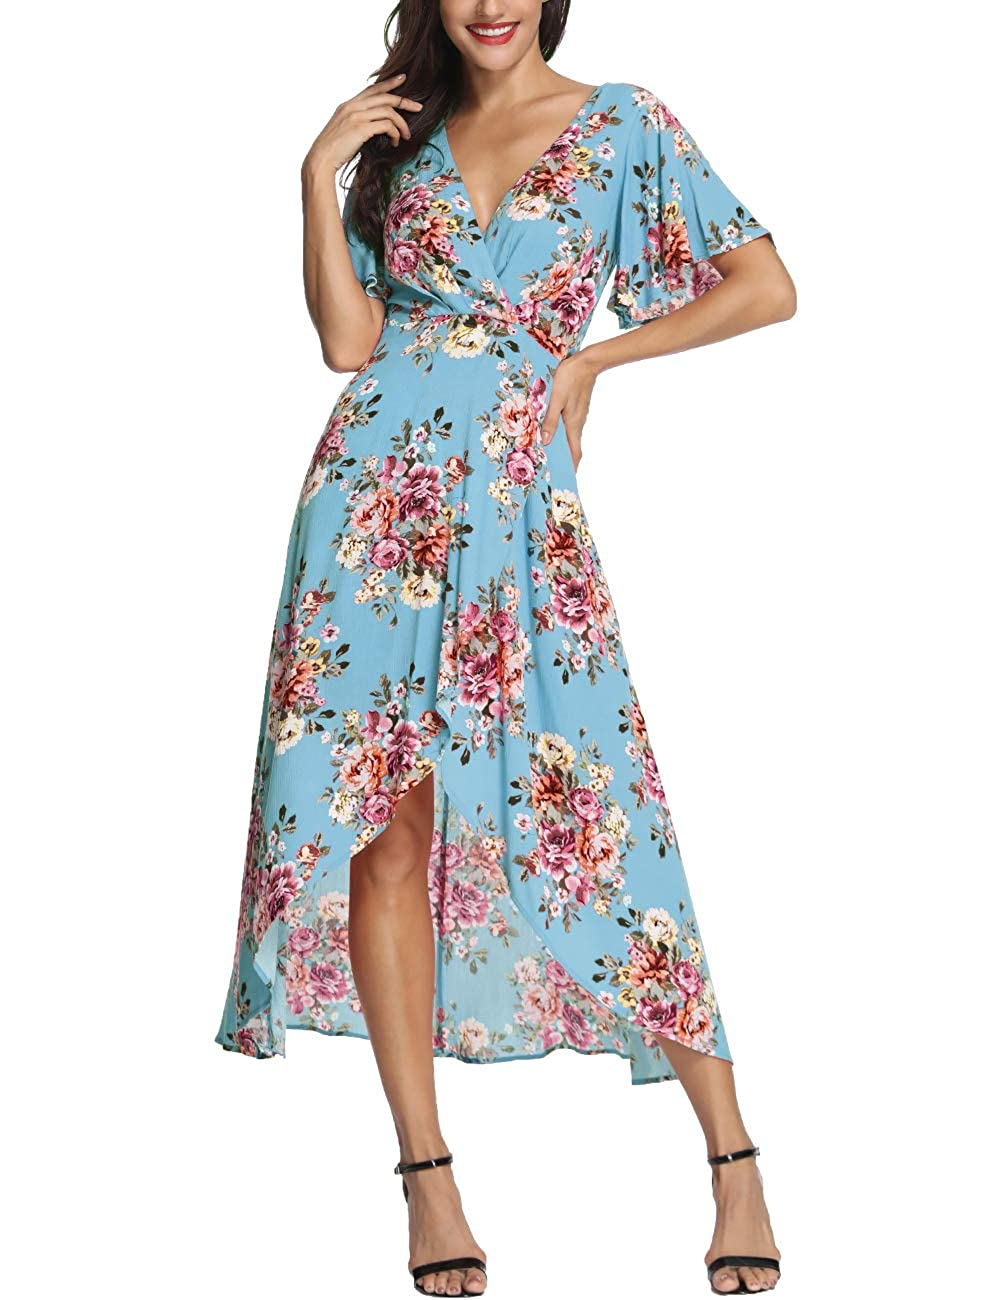 50add06ee3 Azalosie Wrap Maxi Dress Short Sleeve V Neck Floral Flowy Front Slit High  Low Women Summer Beach Party Wedding Dress at Amazon Women's Clothing store: